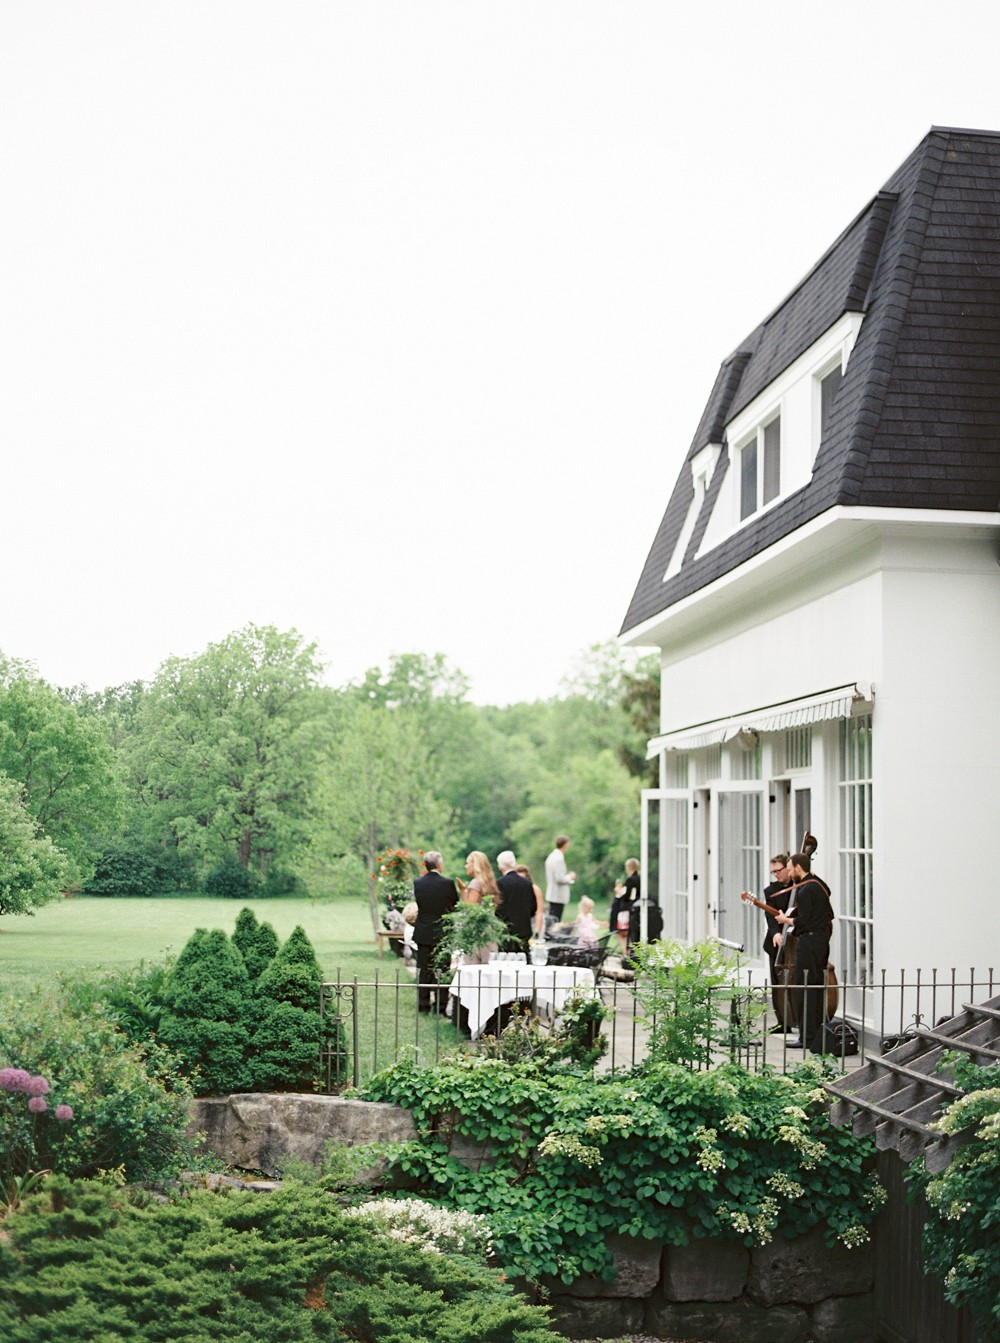 Ontario wedding venue | Sophisticated Real Wedding in Ontario by When He Found Her on Wedding Sparrow